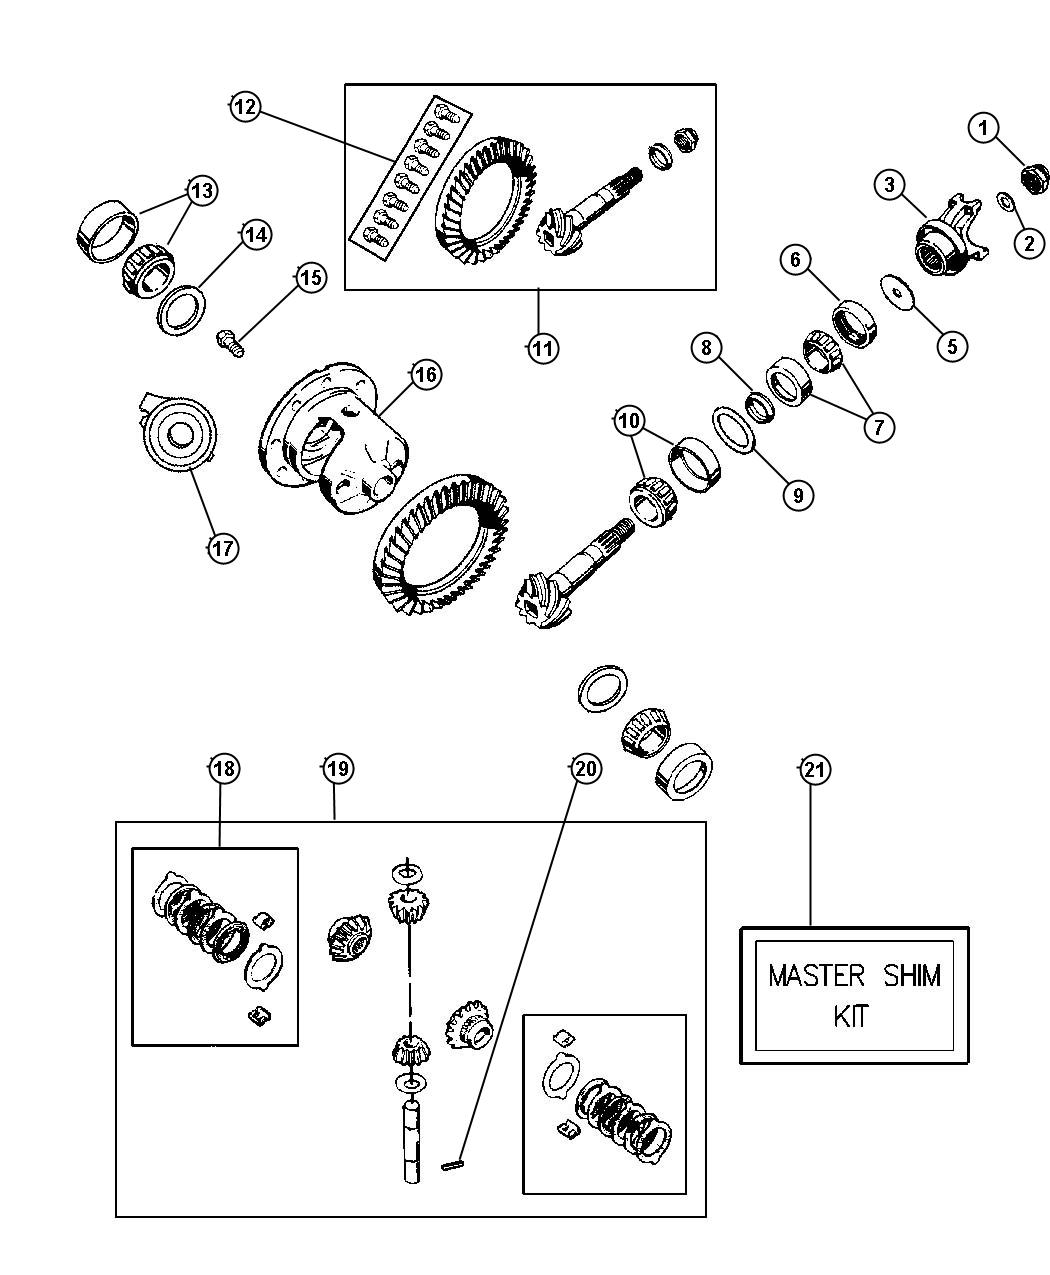 93 Jeep Zj Fuse Box. Jeep. Auto Fuse Box Diagram